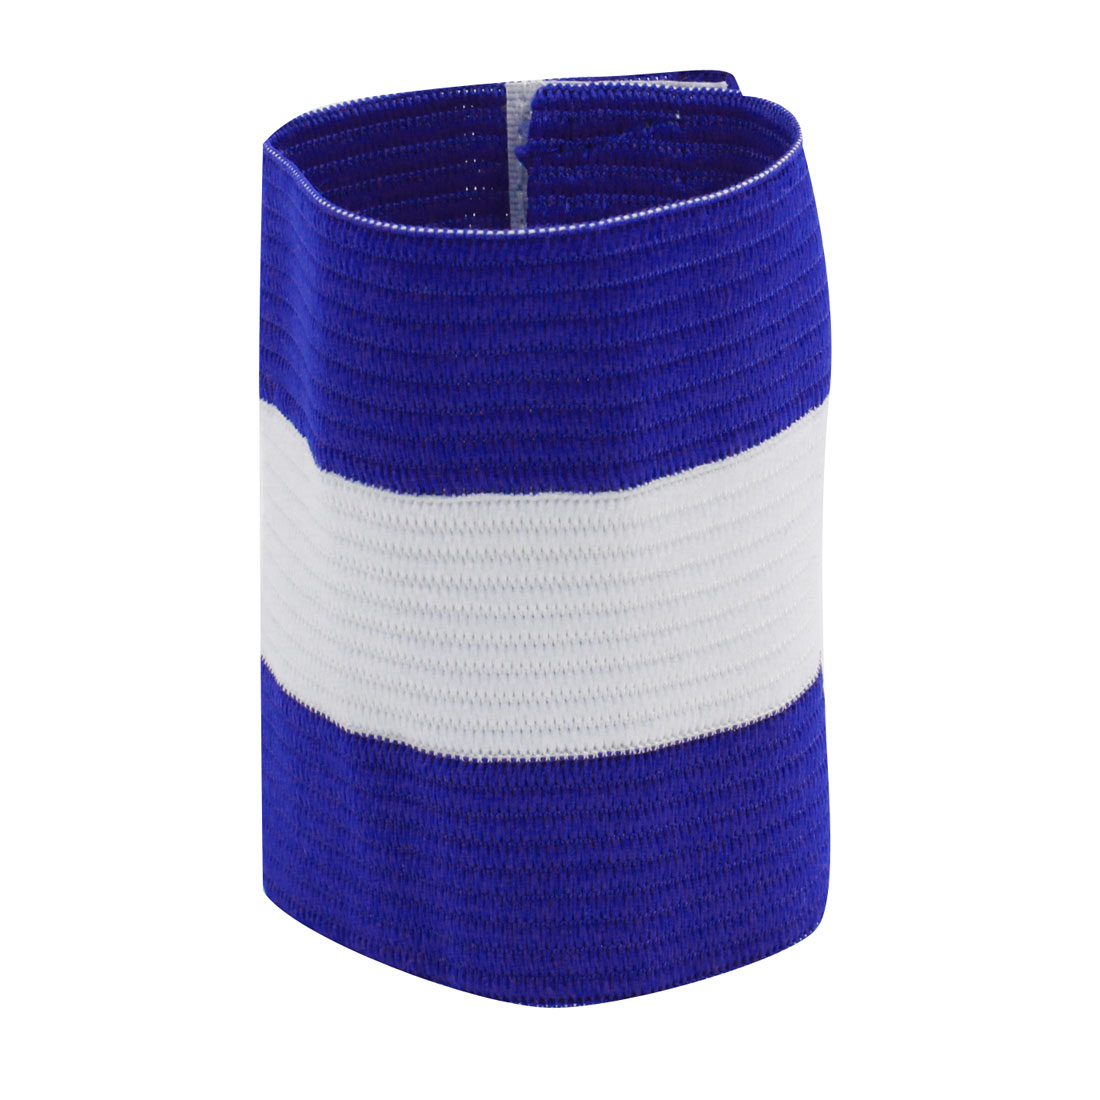 Blue White Detachable Hook Loop Closure Elastic Stretchy Tension Team Game Soccer Football Captain Armband